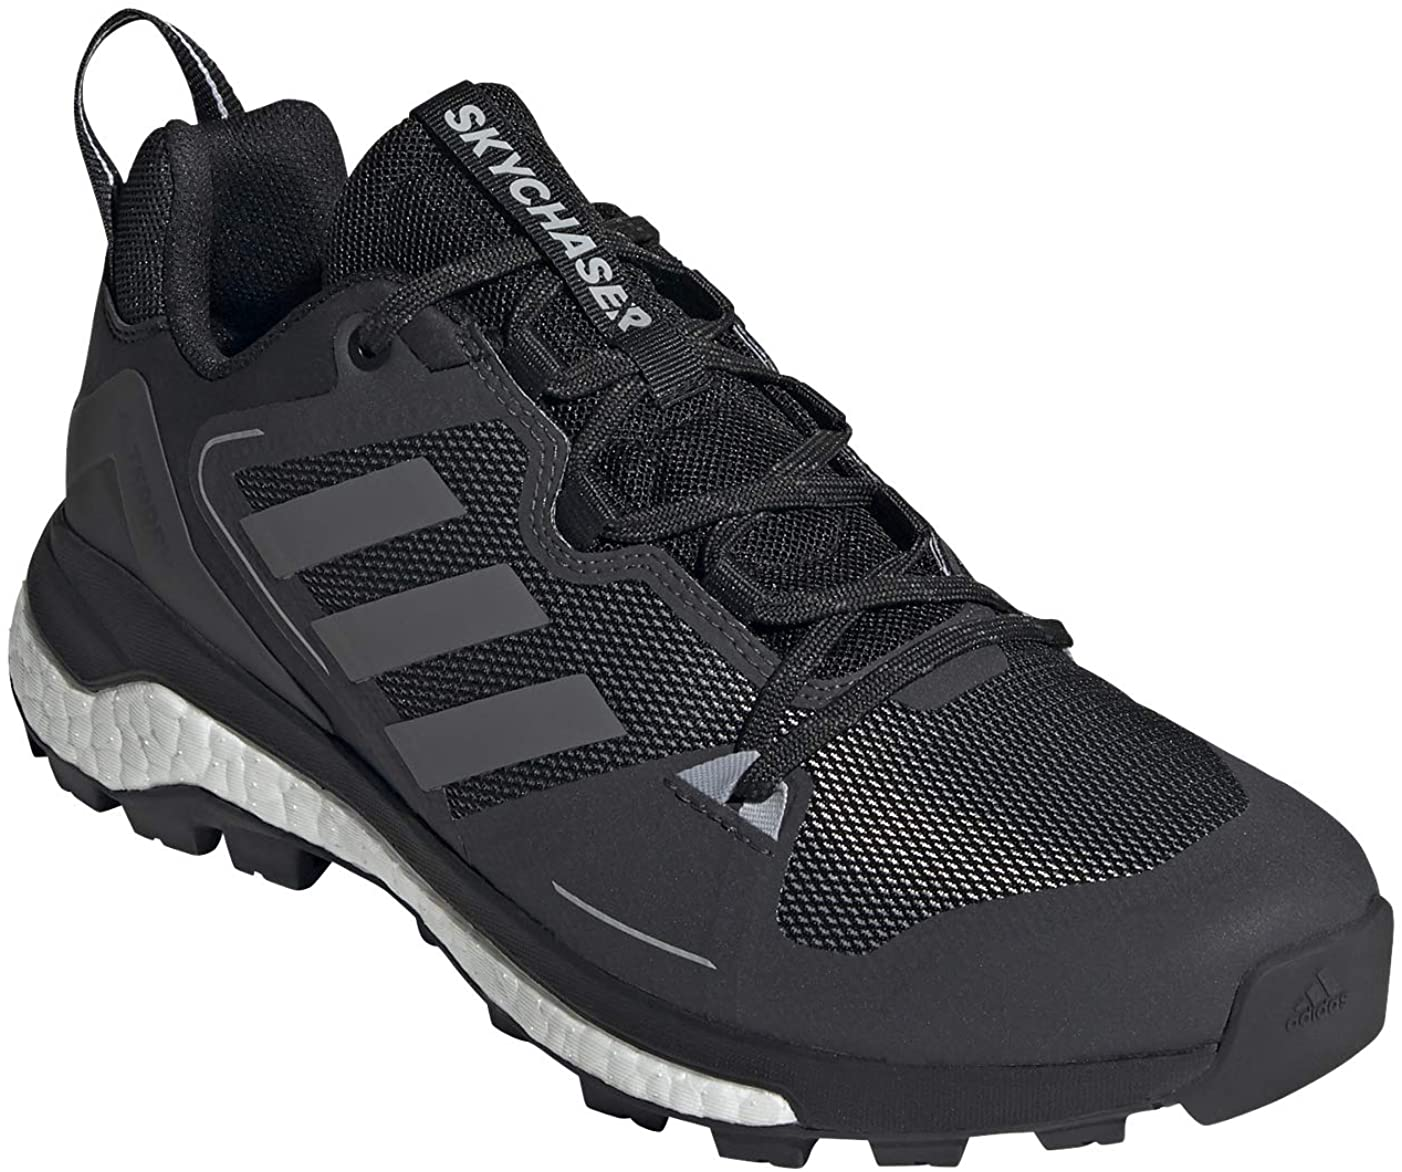 Men's adidas Terrex Skychaser 2.0 Hiking Shoe Core Black/Grey Four/Dgh Solid Grey from the front